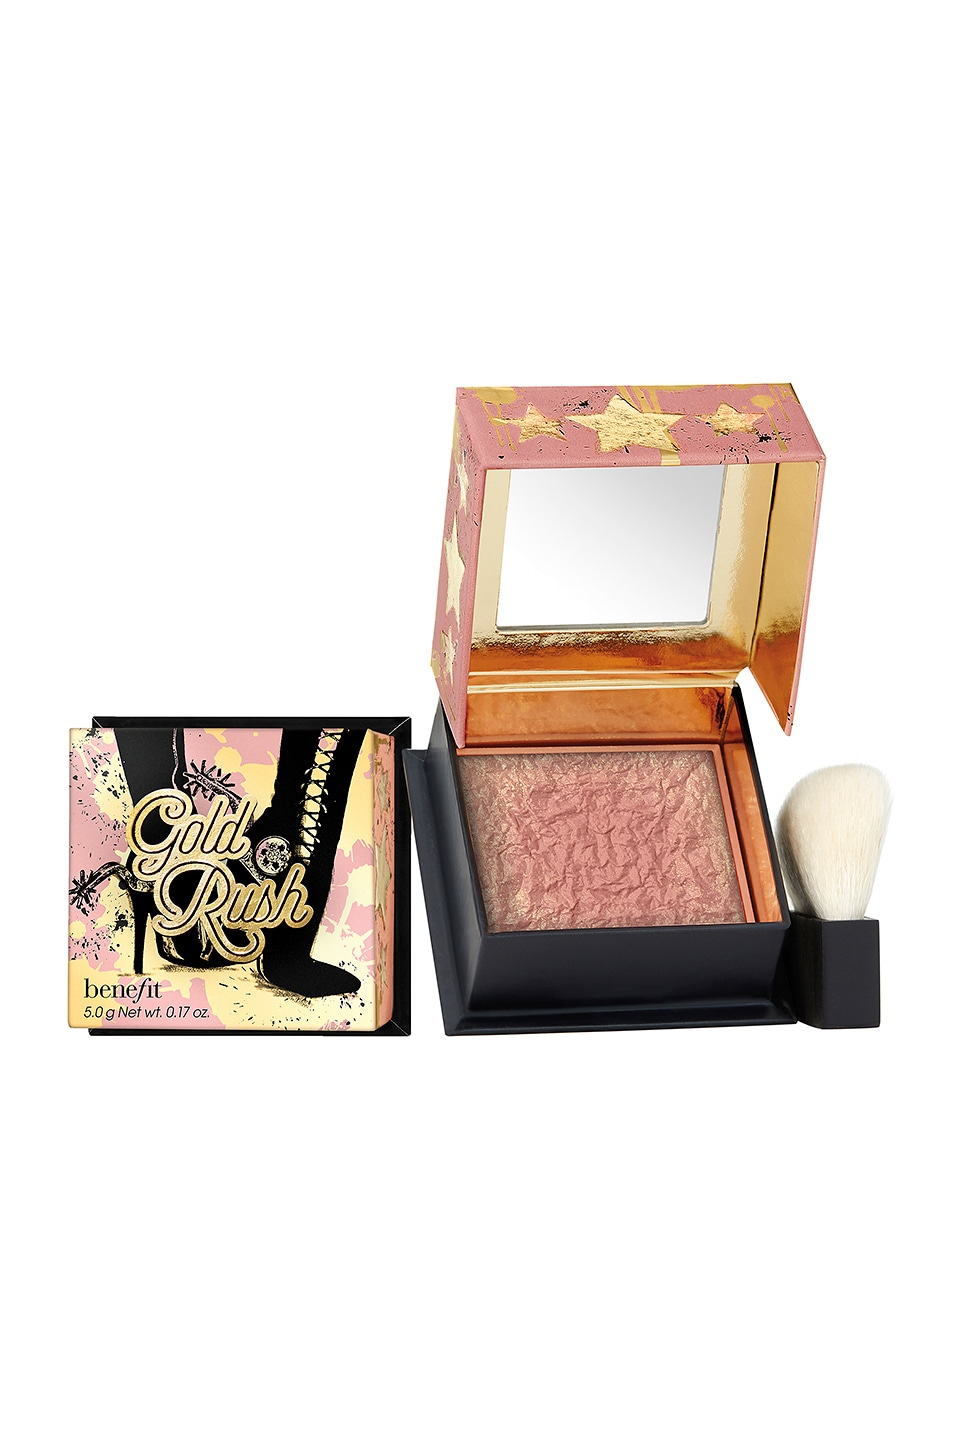 Benefit Cosmetics Gold Rush Powder Blush